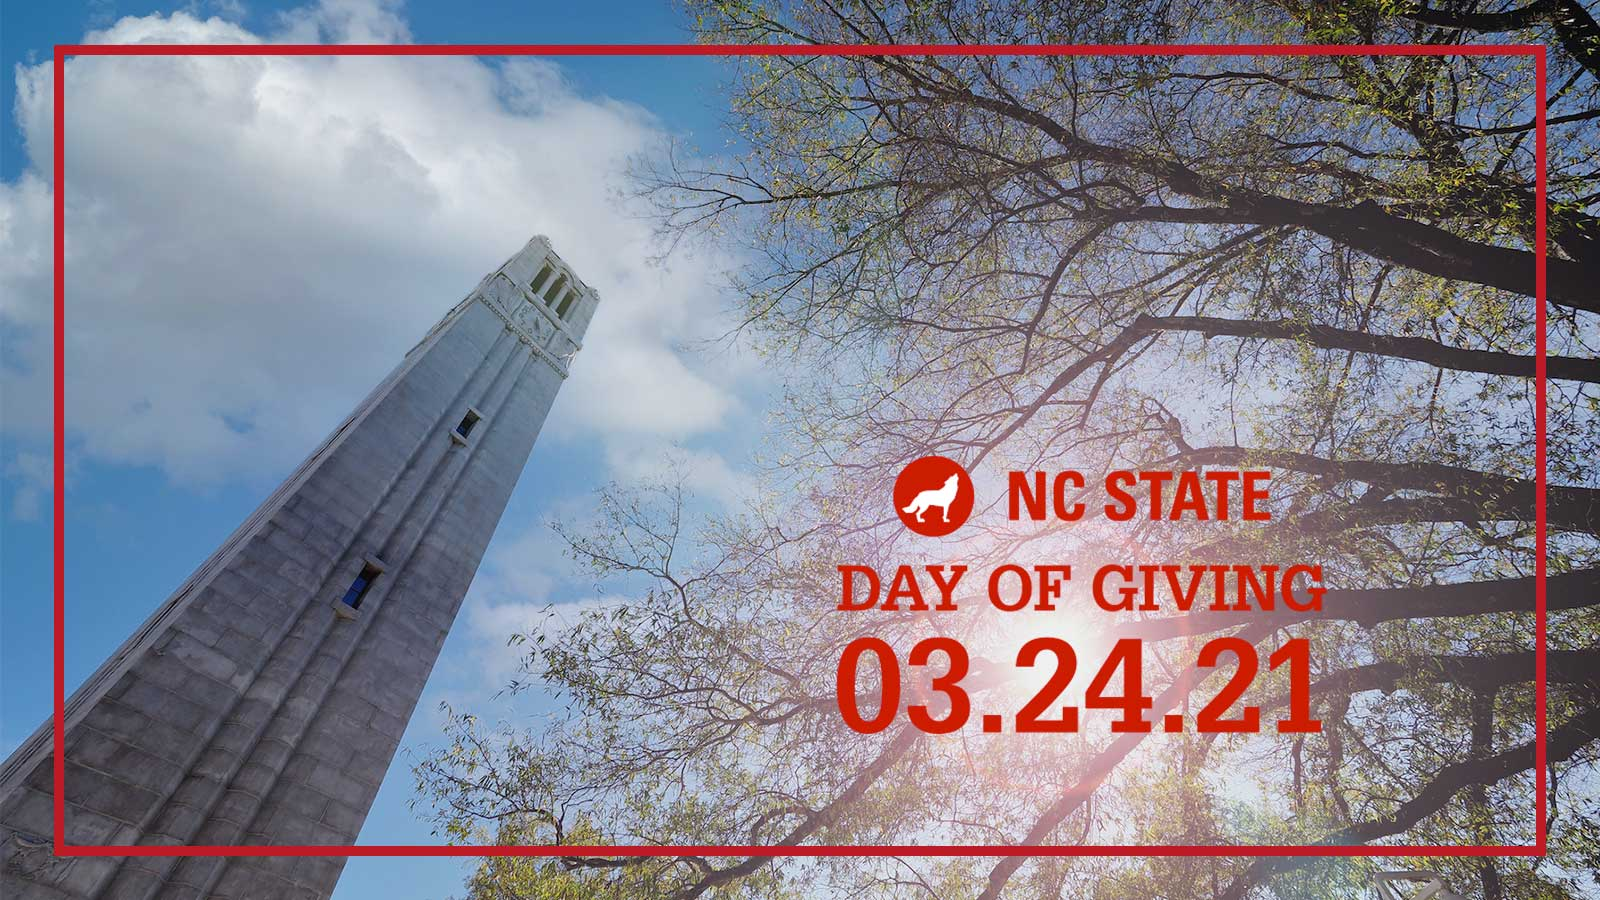 Twitter image of the belltower and text reading NC State Day of Giving 03.24.21